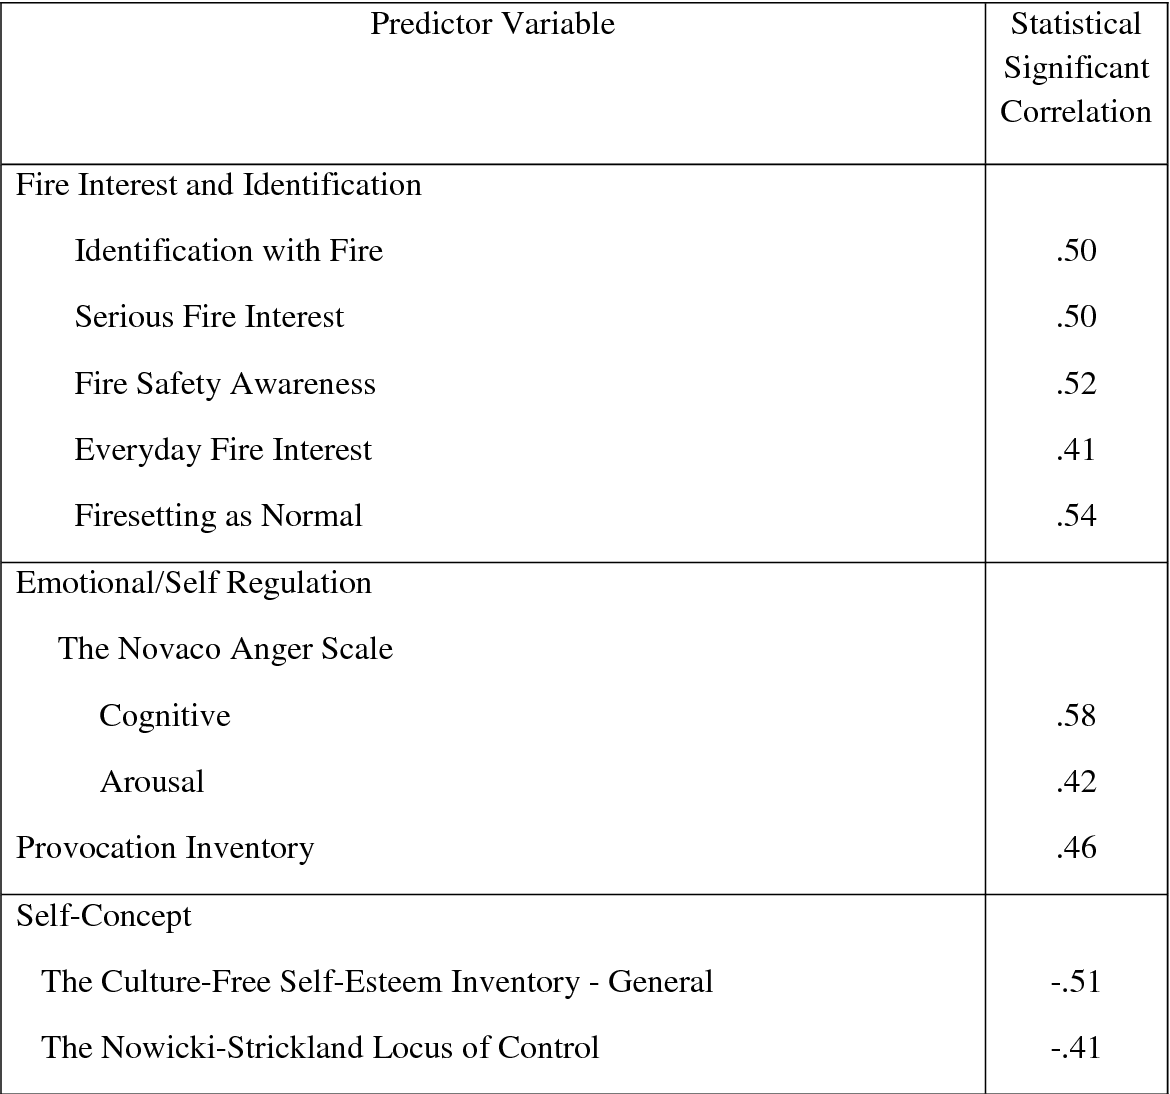 Table 3 from FIRESETTING CHARACTERISTICS 3 Male Imprisoned